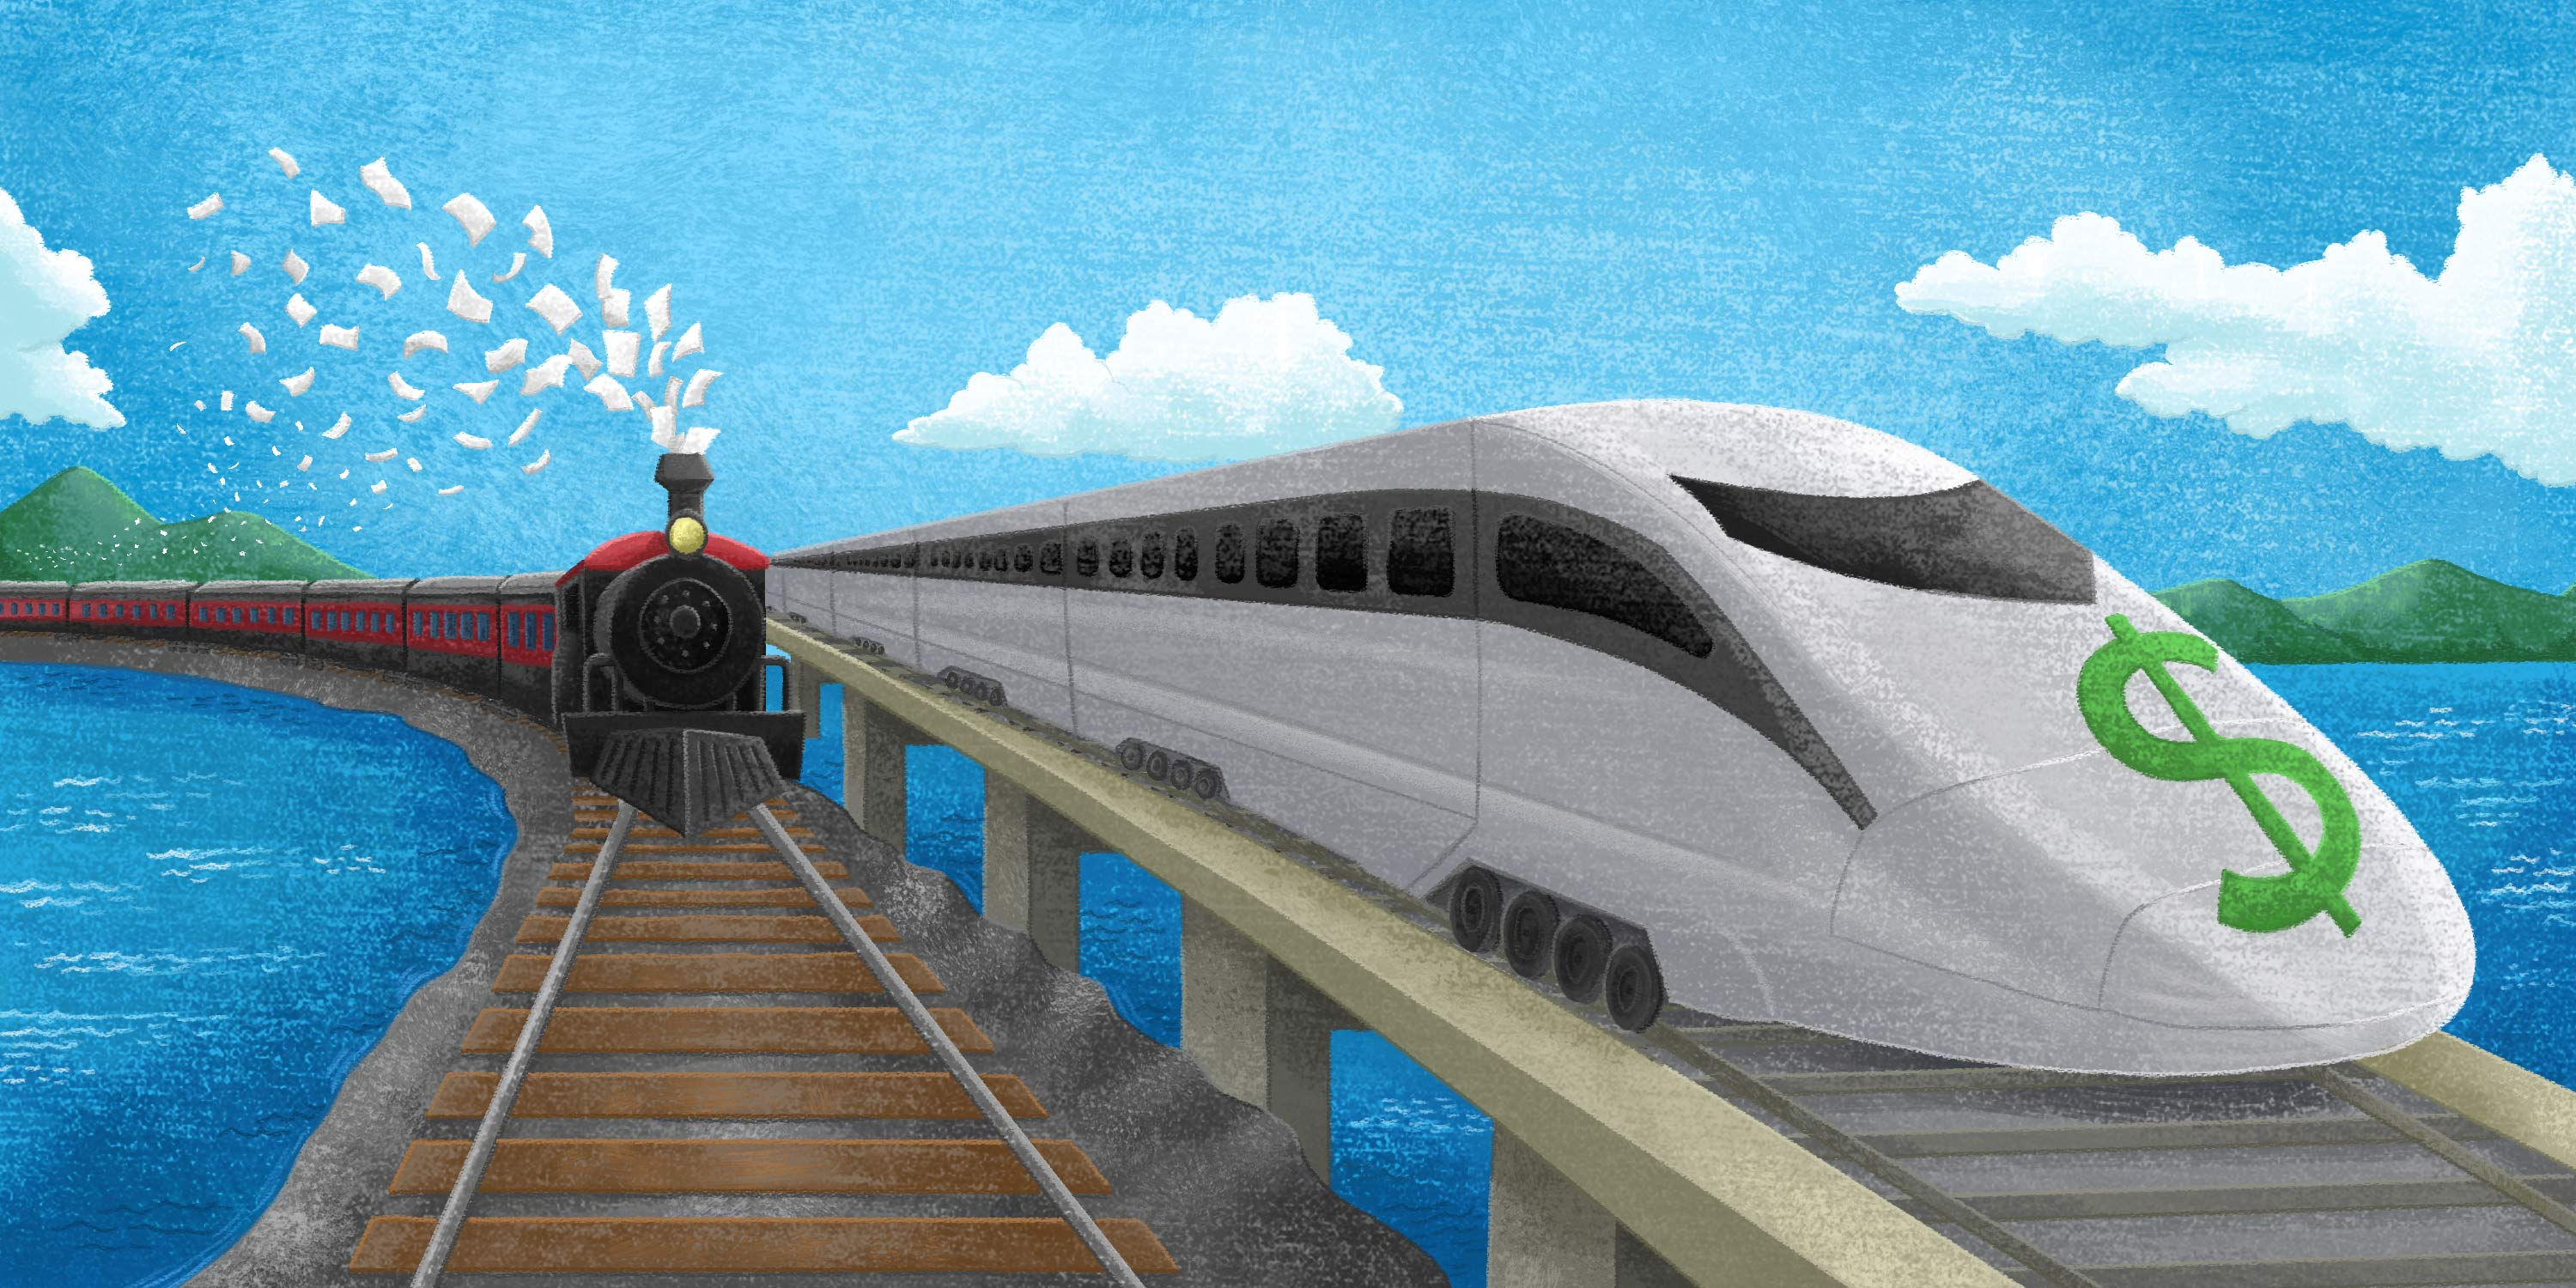 fintech payments bullet train outpacing paper payments train